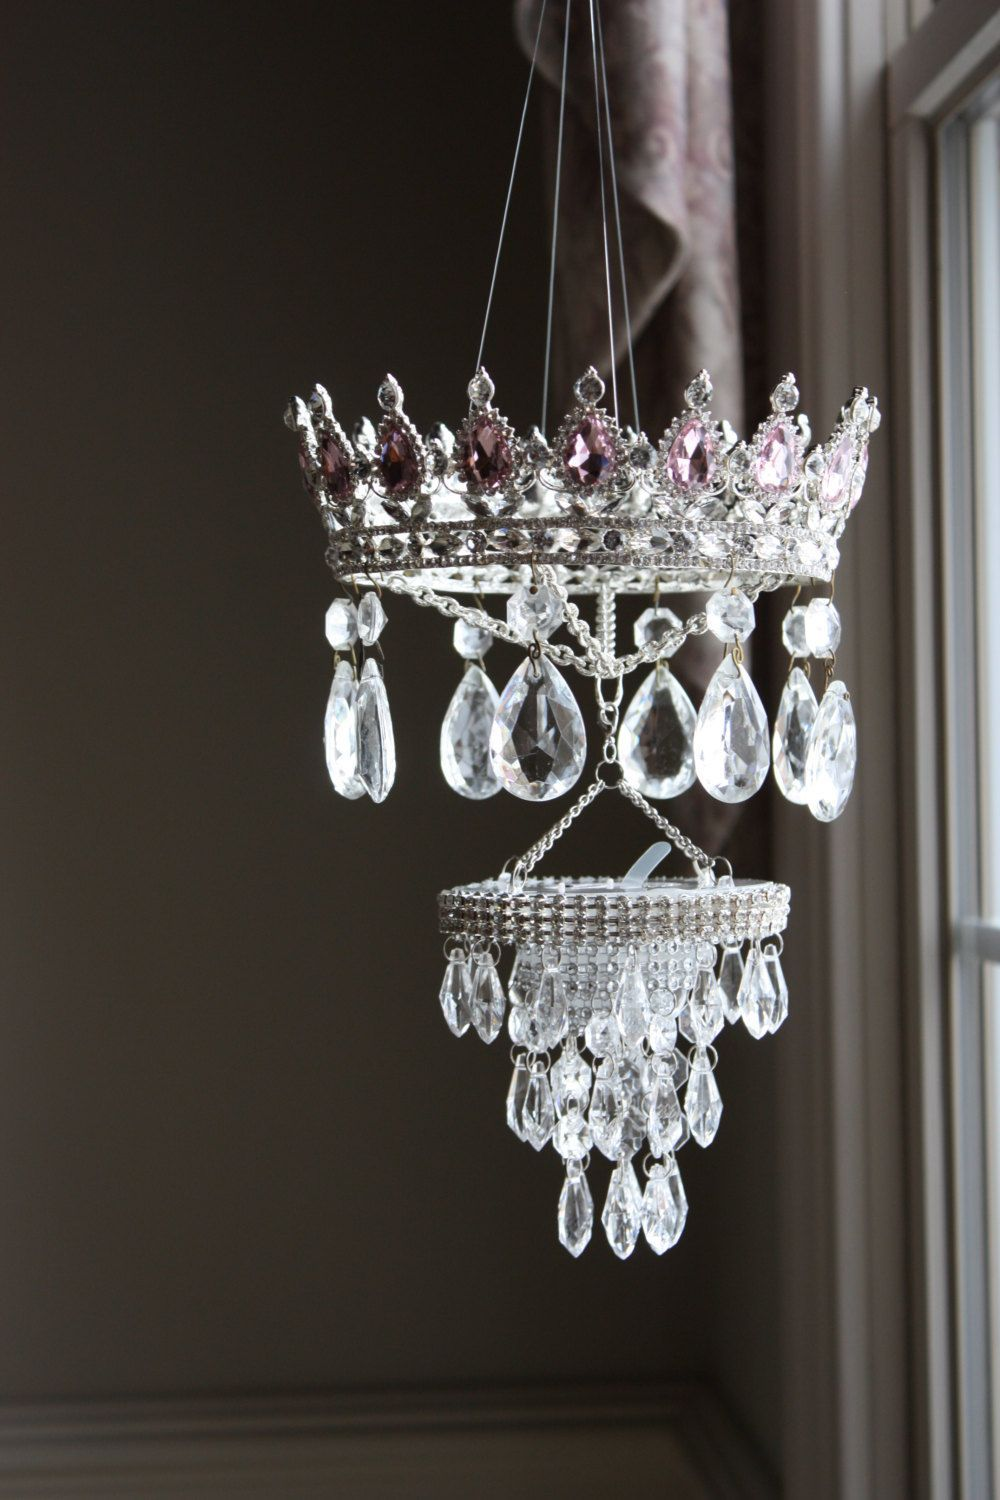 Versailles 6 Light White Chandelier with Crystals, Pink Shade and Pink Crystal Stars